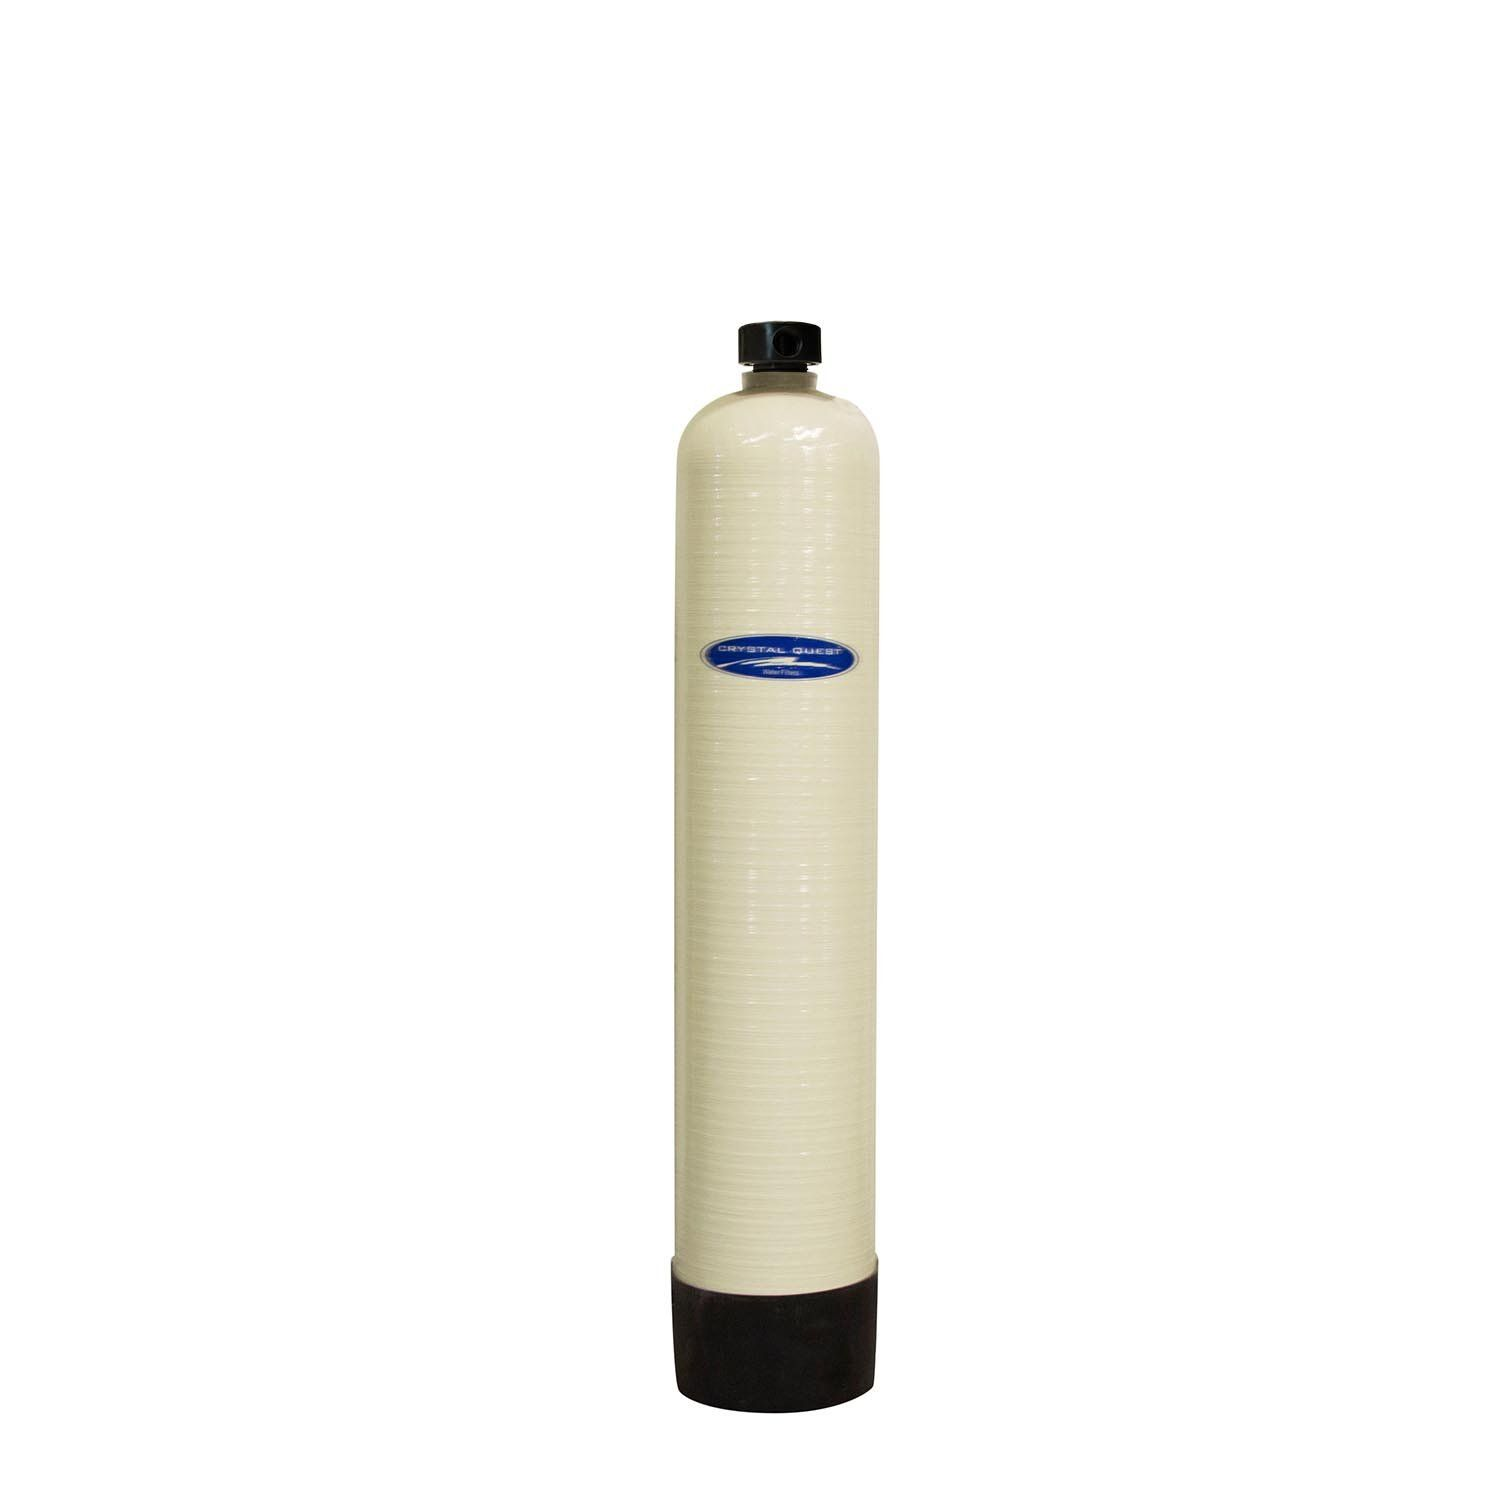 20 Gpm Commercial Salt Free Water Softener Anti Scale System 9 25 Liters Water Softener Softener Salt Free